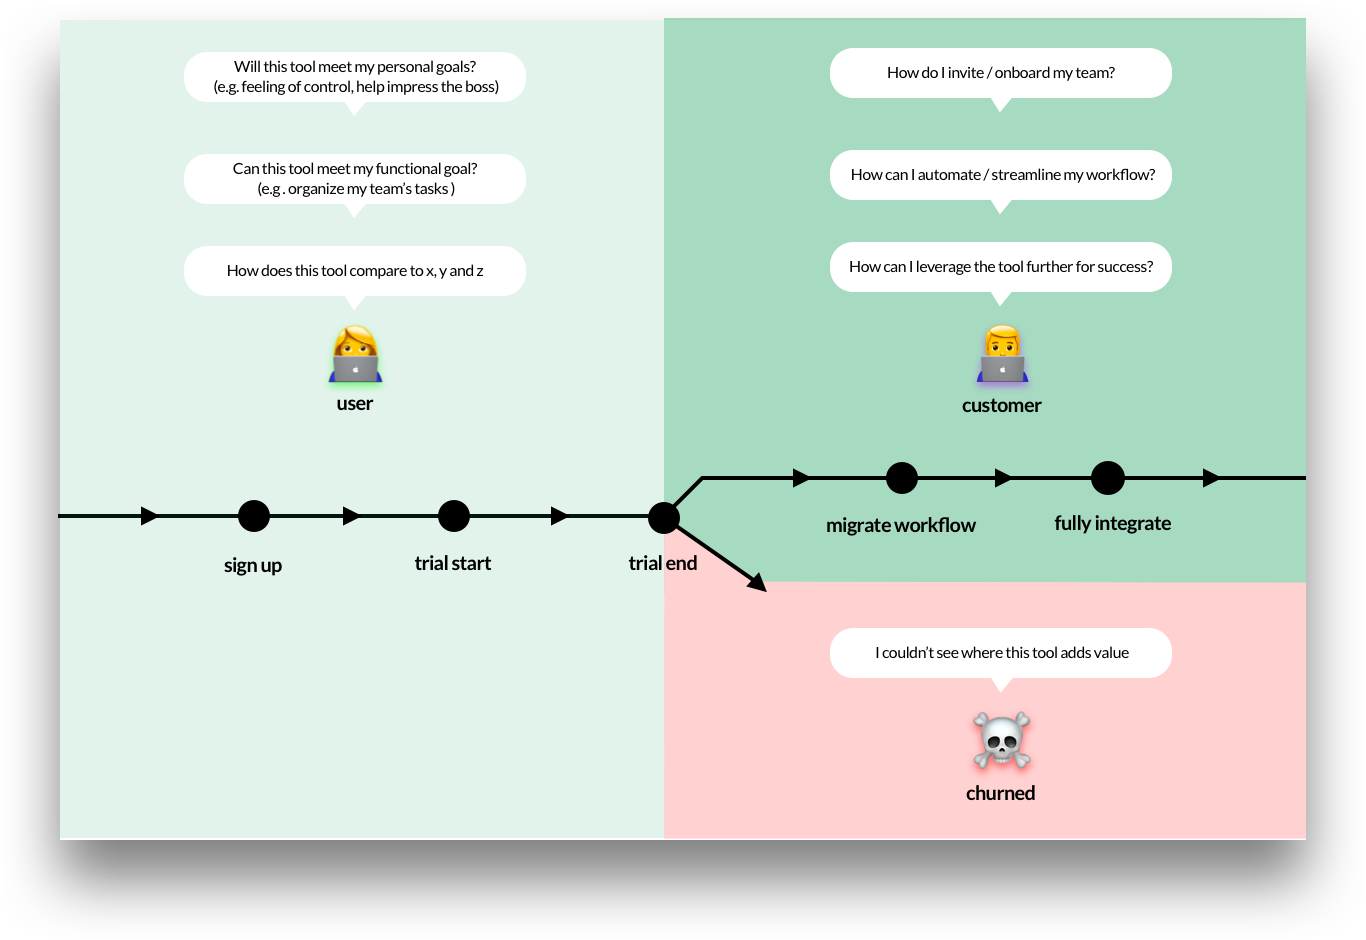 An expanded view of the diagram above showing the customer going through additional steps of integrating the tool into their workflow.